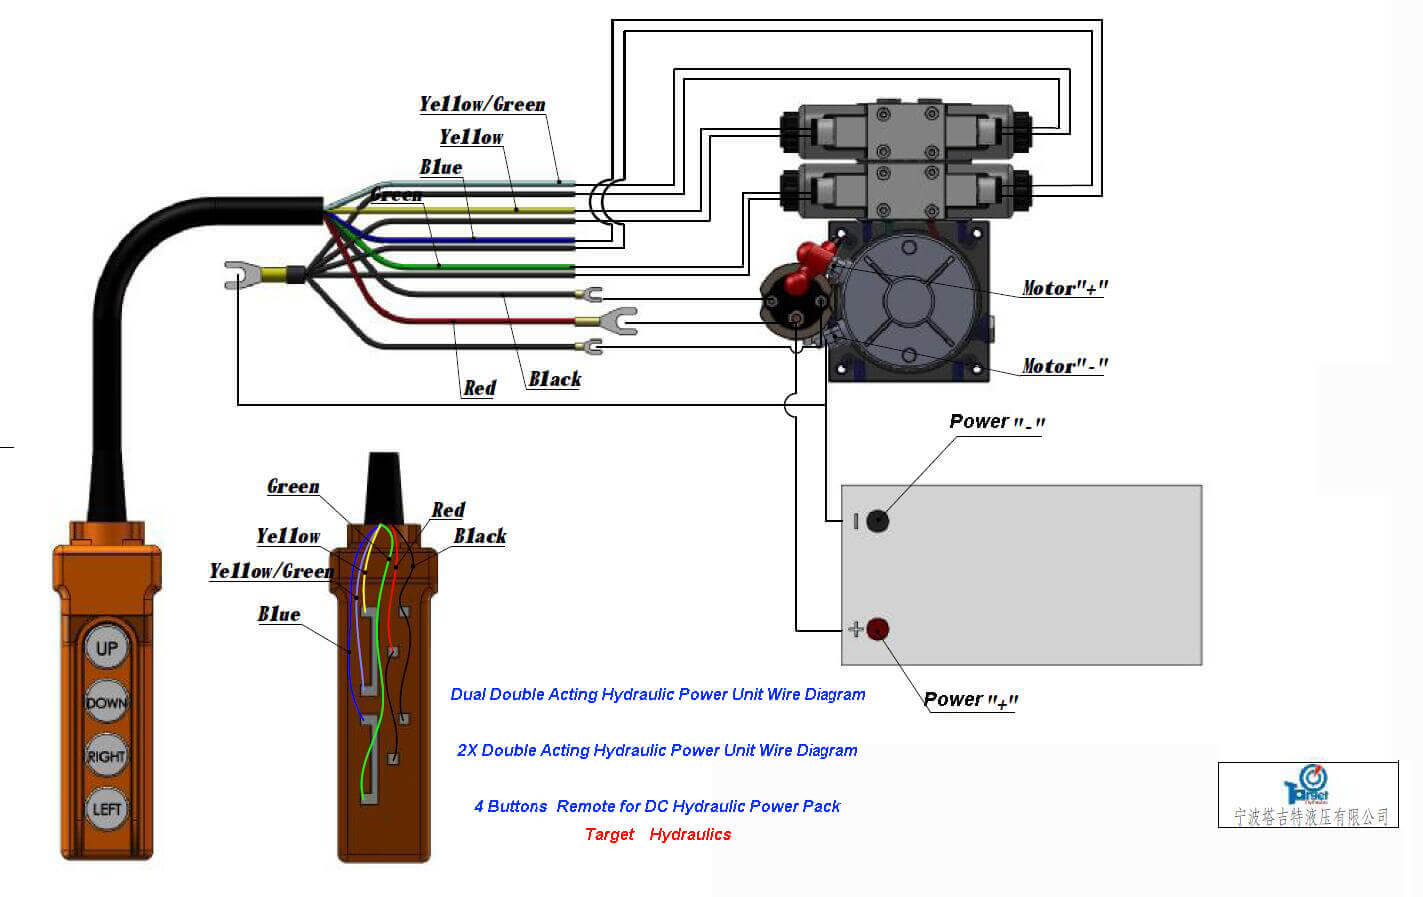 how to wire hydraulic power pack power unit diagram design dual double acting hydraulic cylinder power units wiring